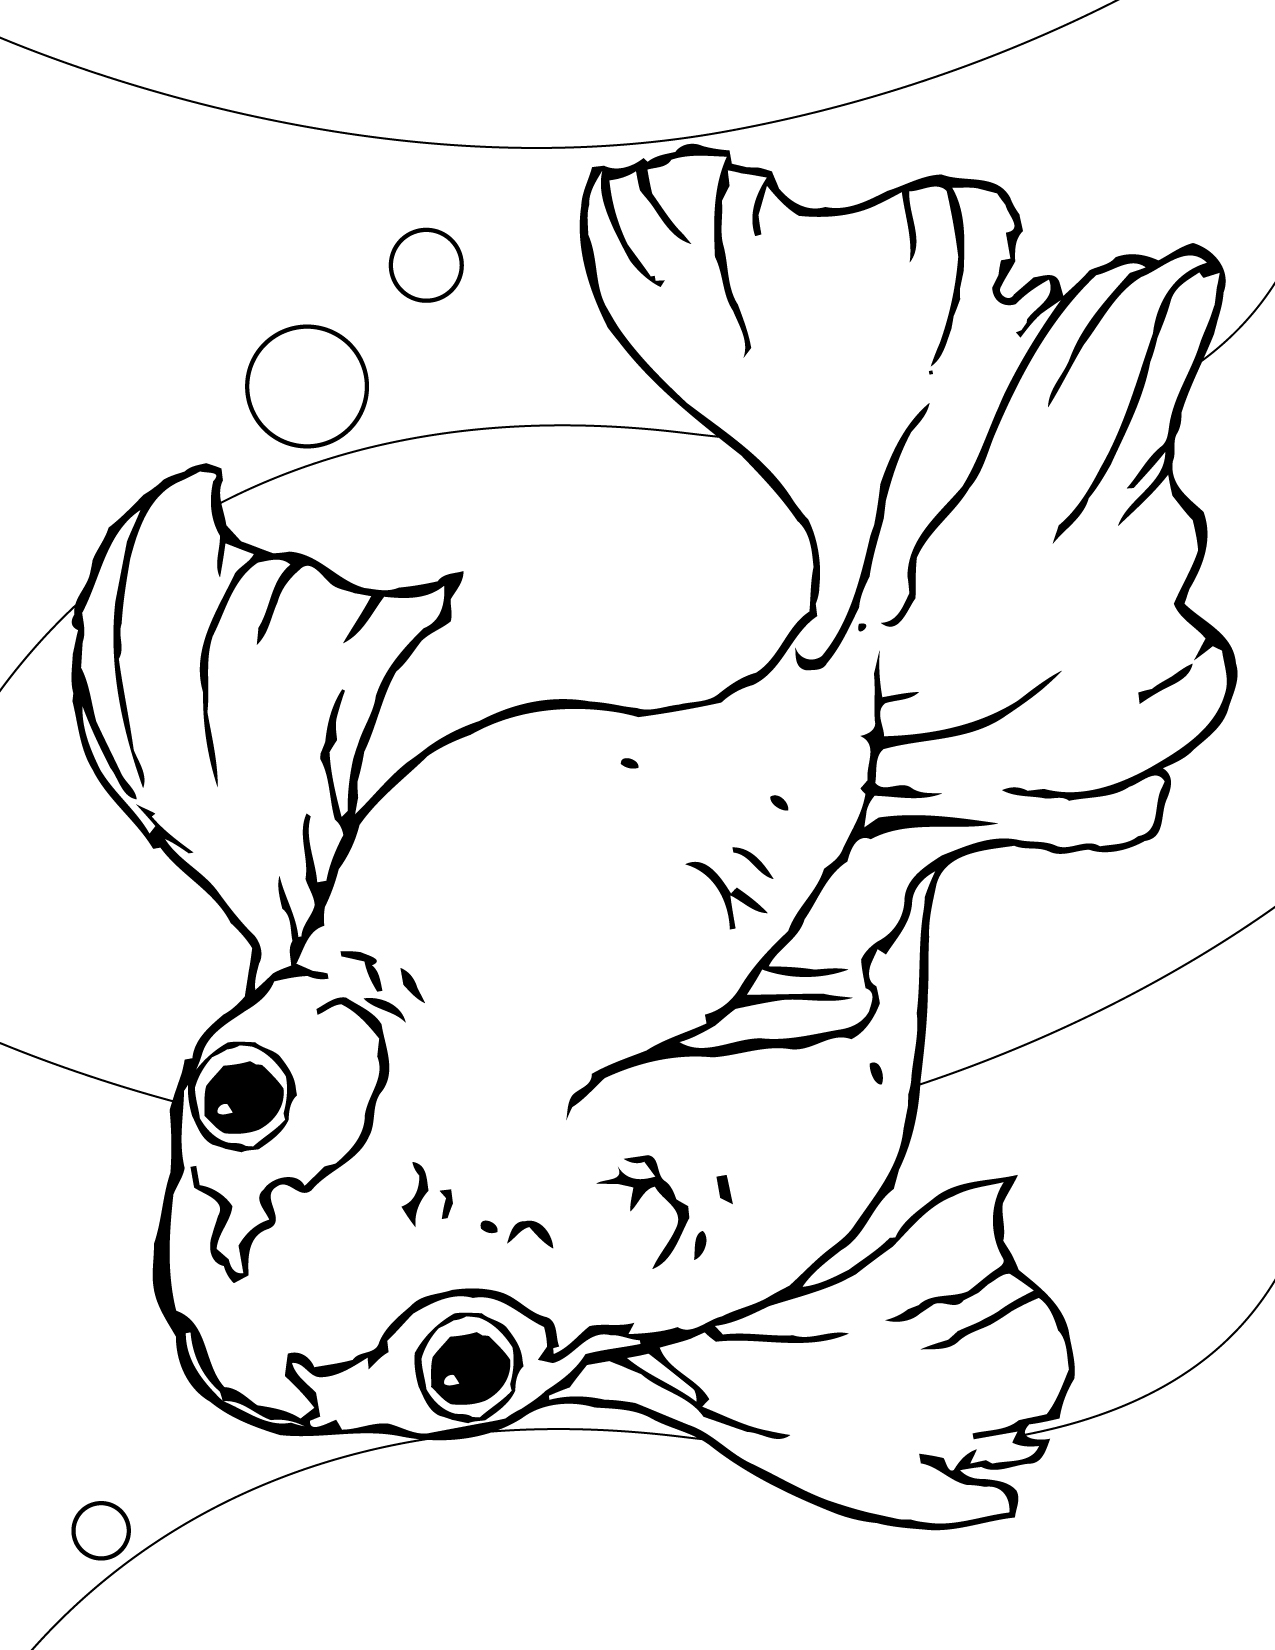 free coloring pages fish - photo#34